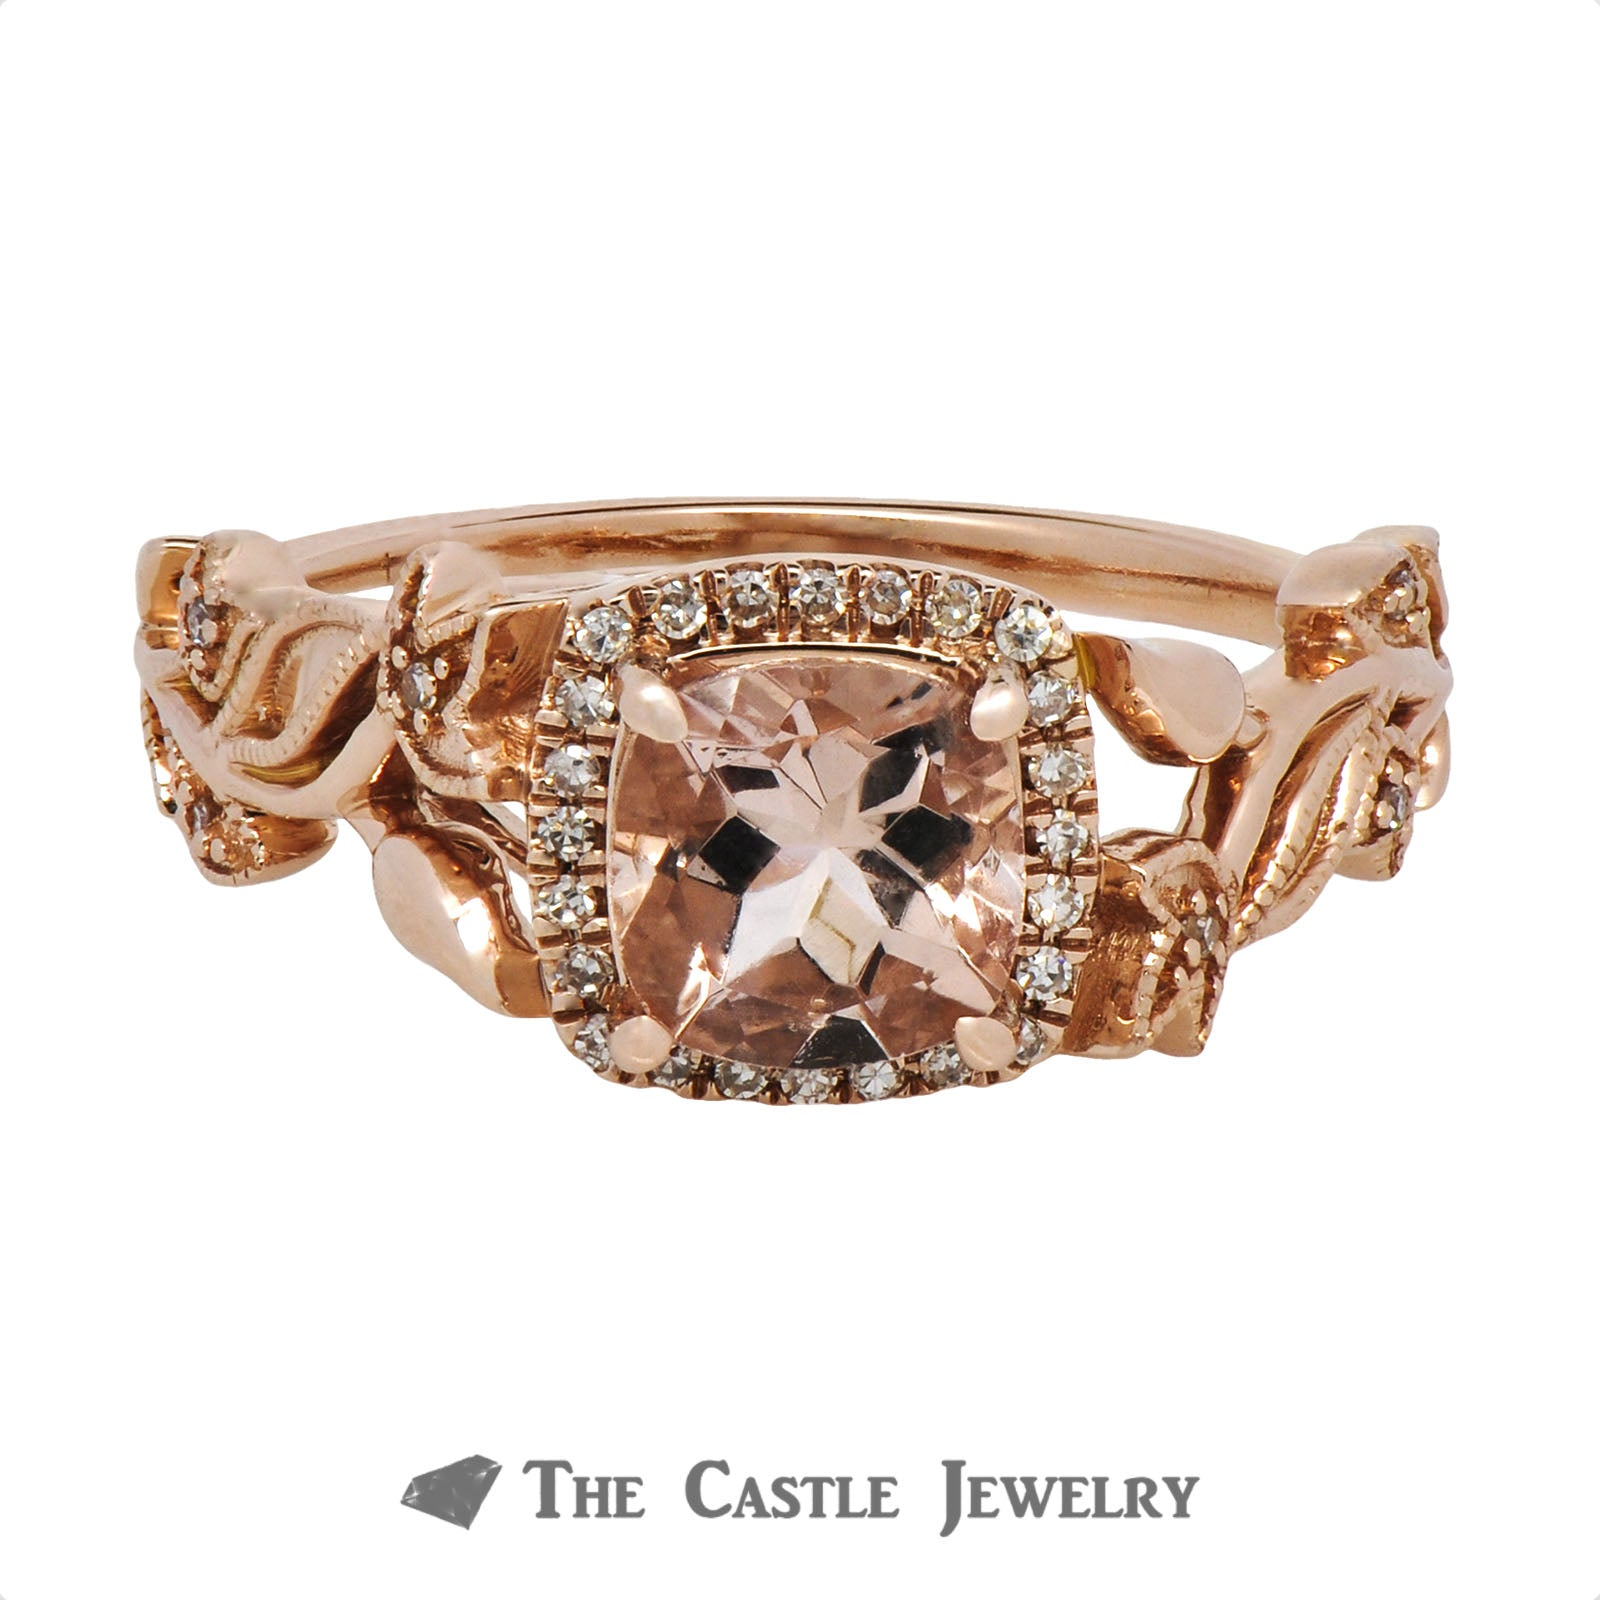 Cushion Cut Morganite Ring with Diamond Halo & Flower Design Rose Gold Mounting